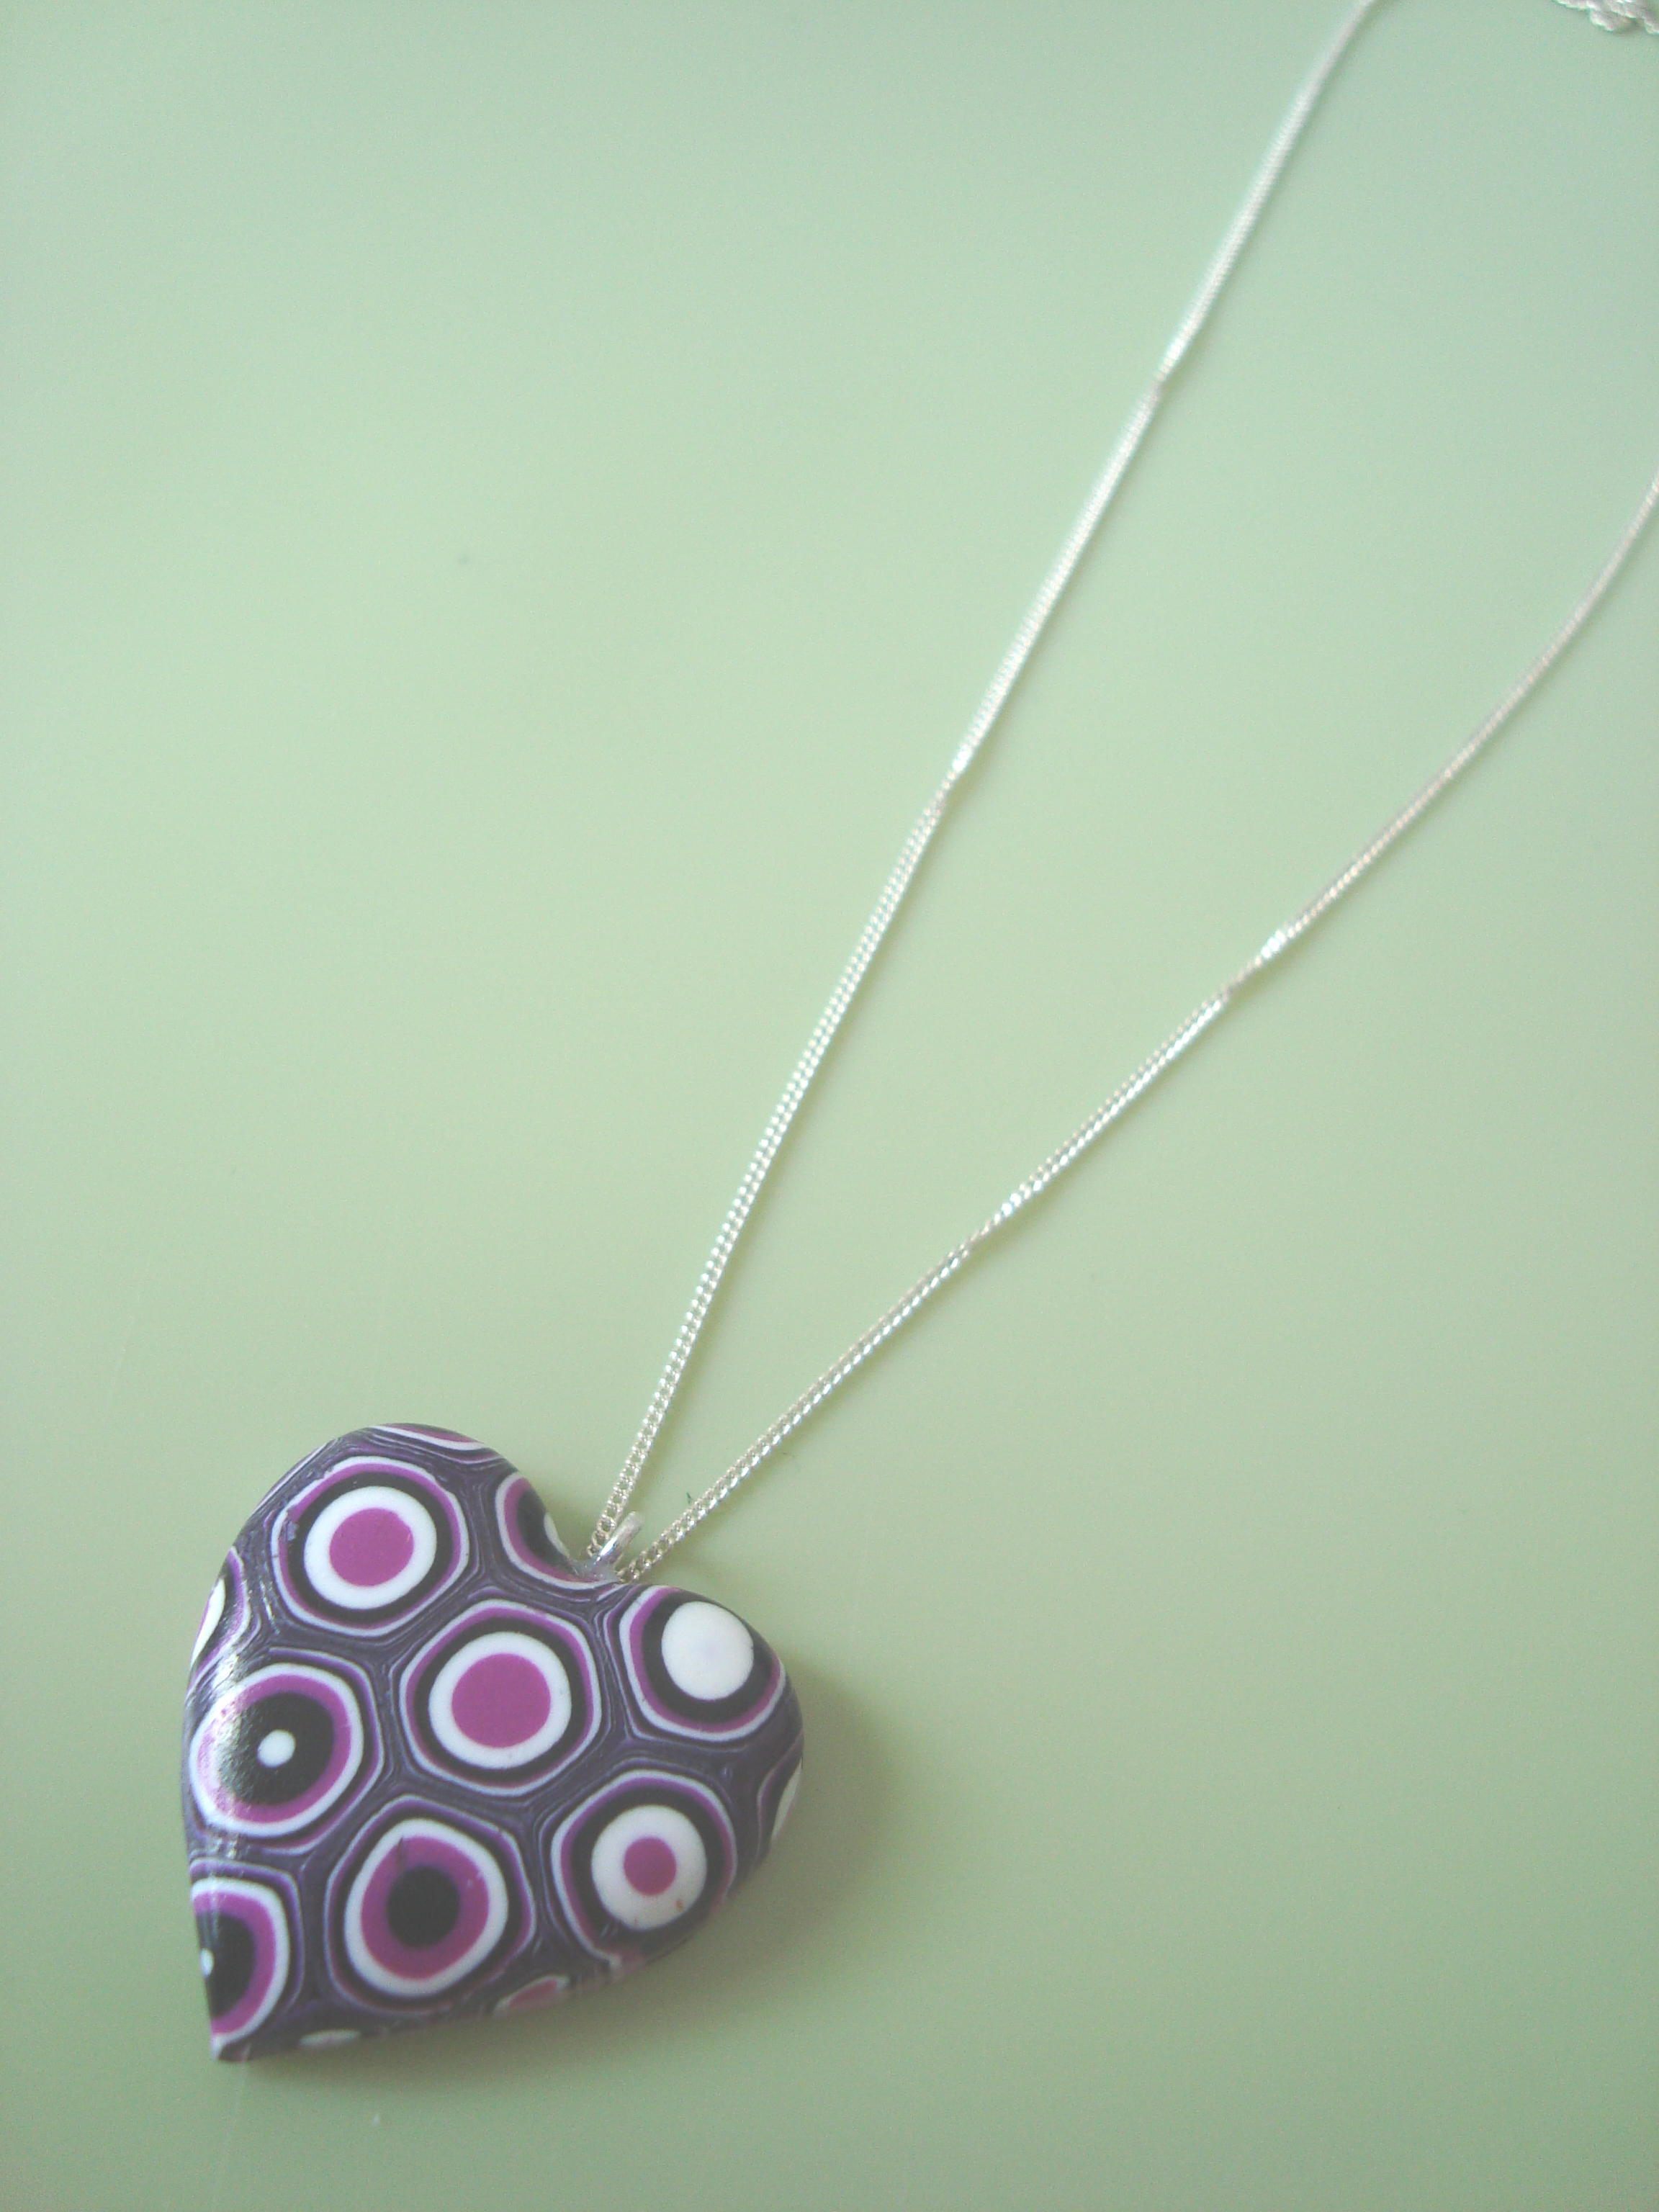 Polymer clay pendant tutorial the crafty network we then finished the pendant by hanging it on a silver plated chain but you can choose to make it into anything you like aloadofball Images